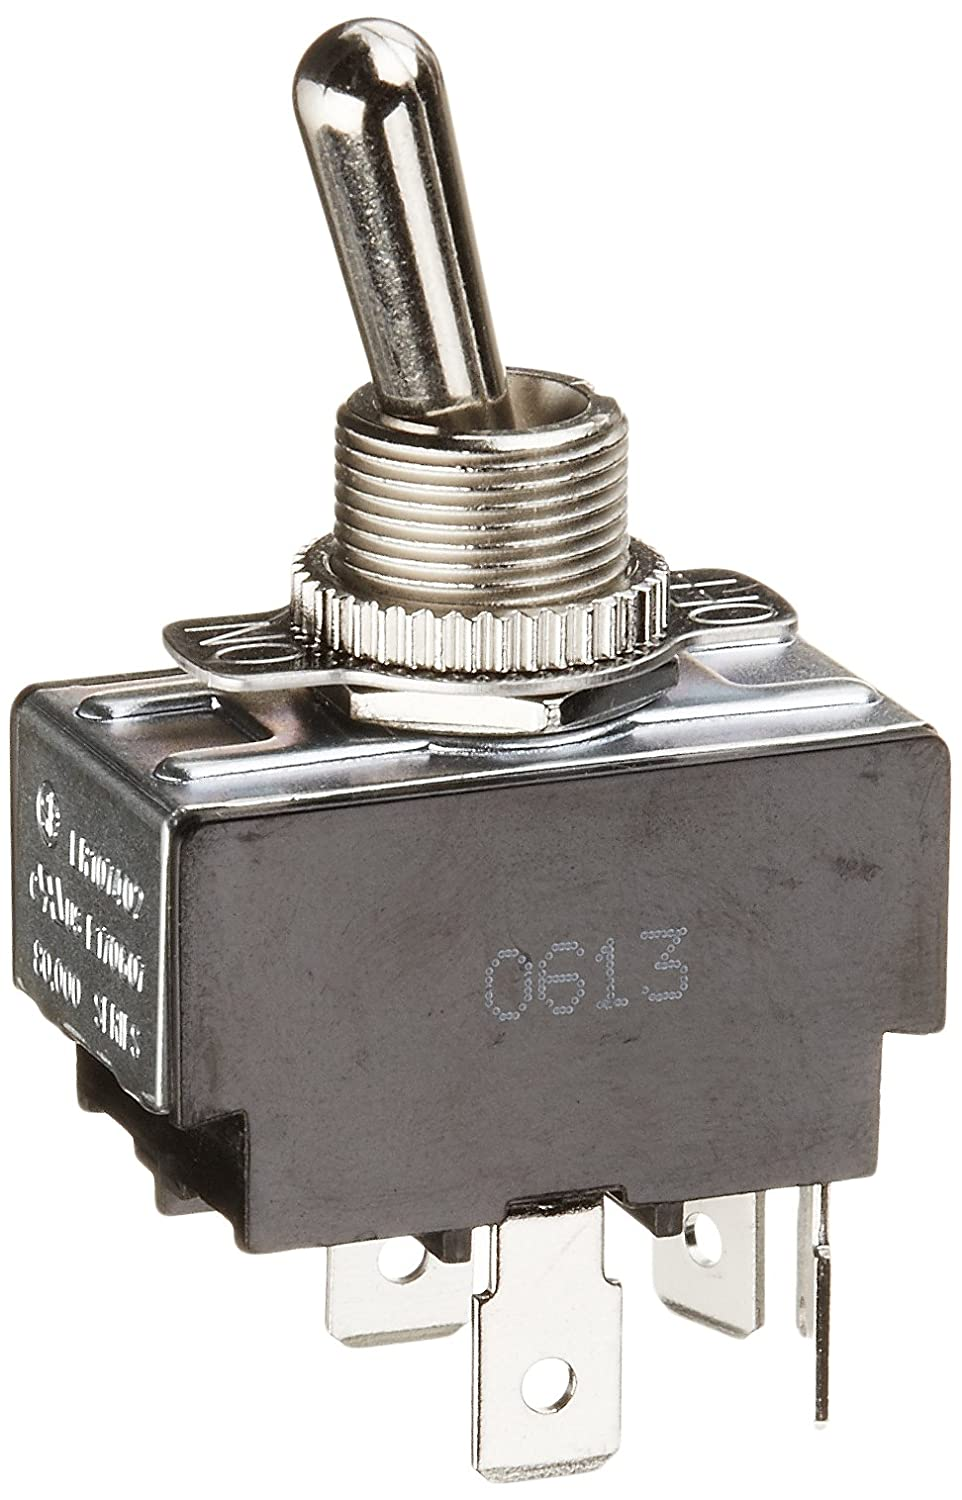 Toggle Switch, Maintained Contact and Multiple Pole, On Off Circut Function, DPST, Brass/Nickel Actuator, 20/10 amps at 125/250 VAC, 0.250 Quikconnect Connection NSi Industries 78130TQ